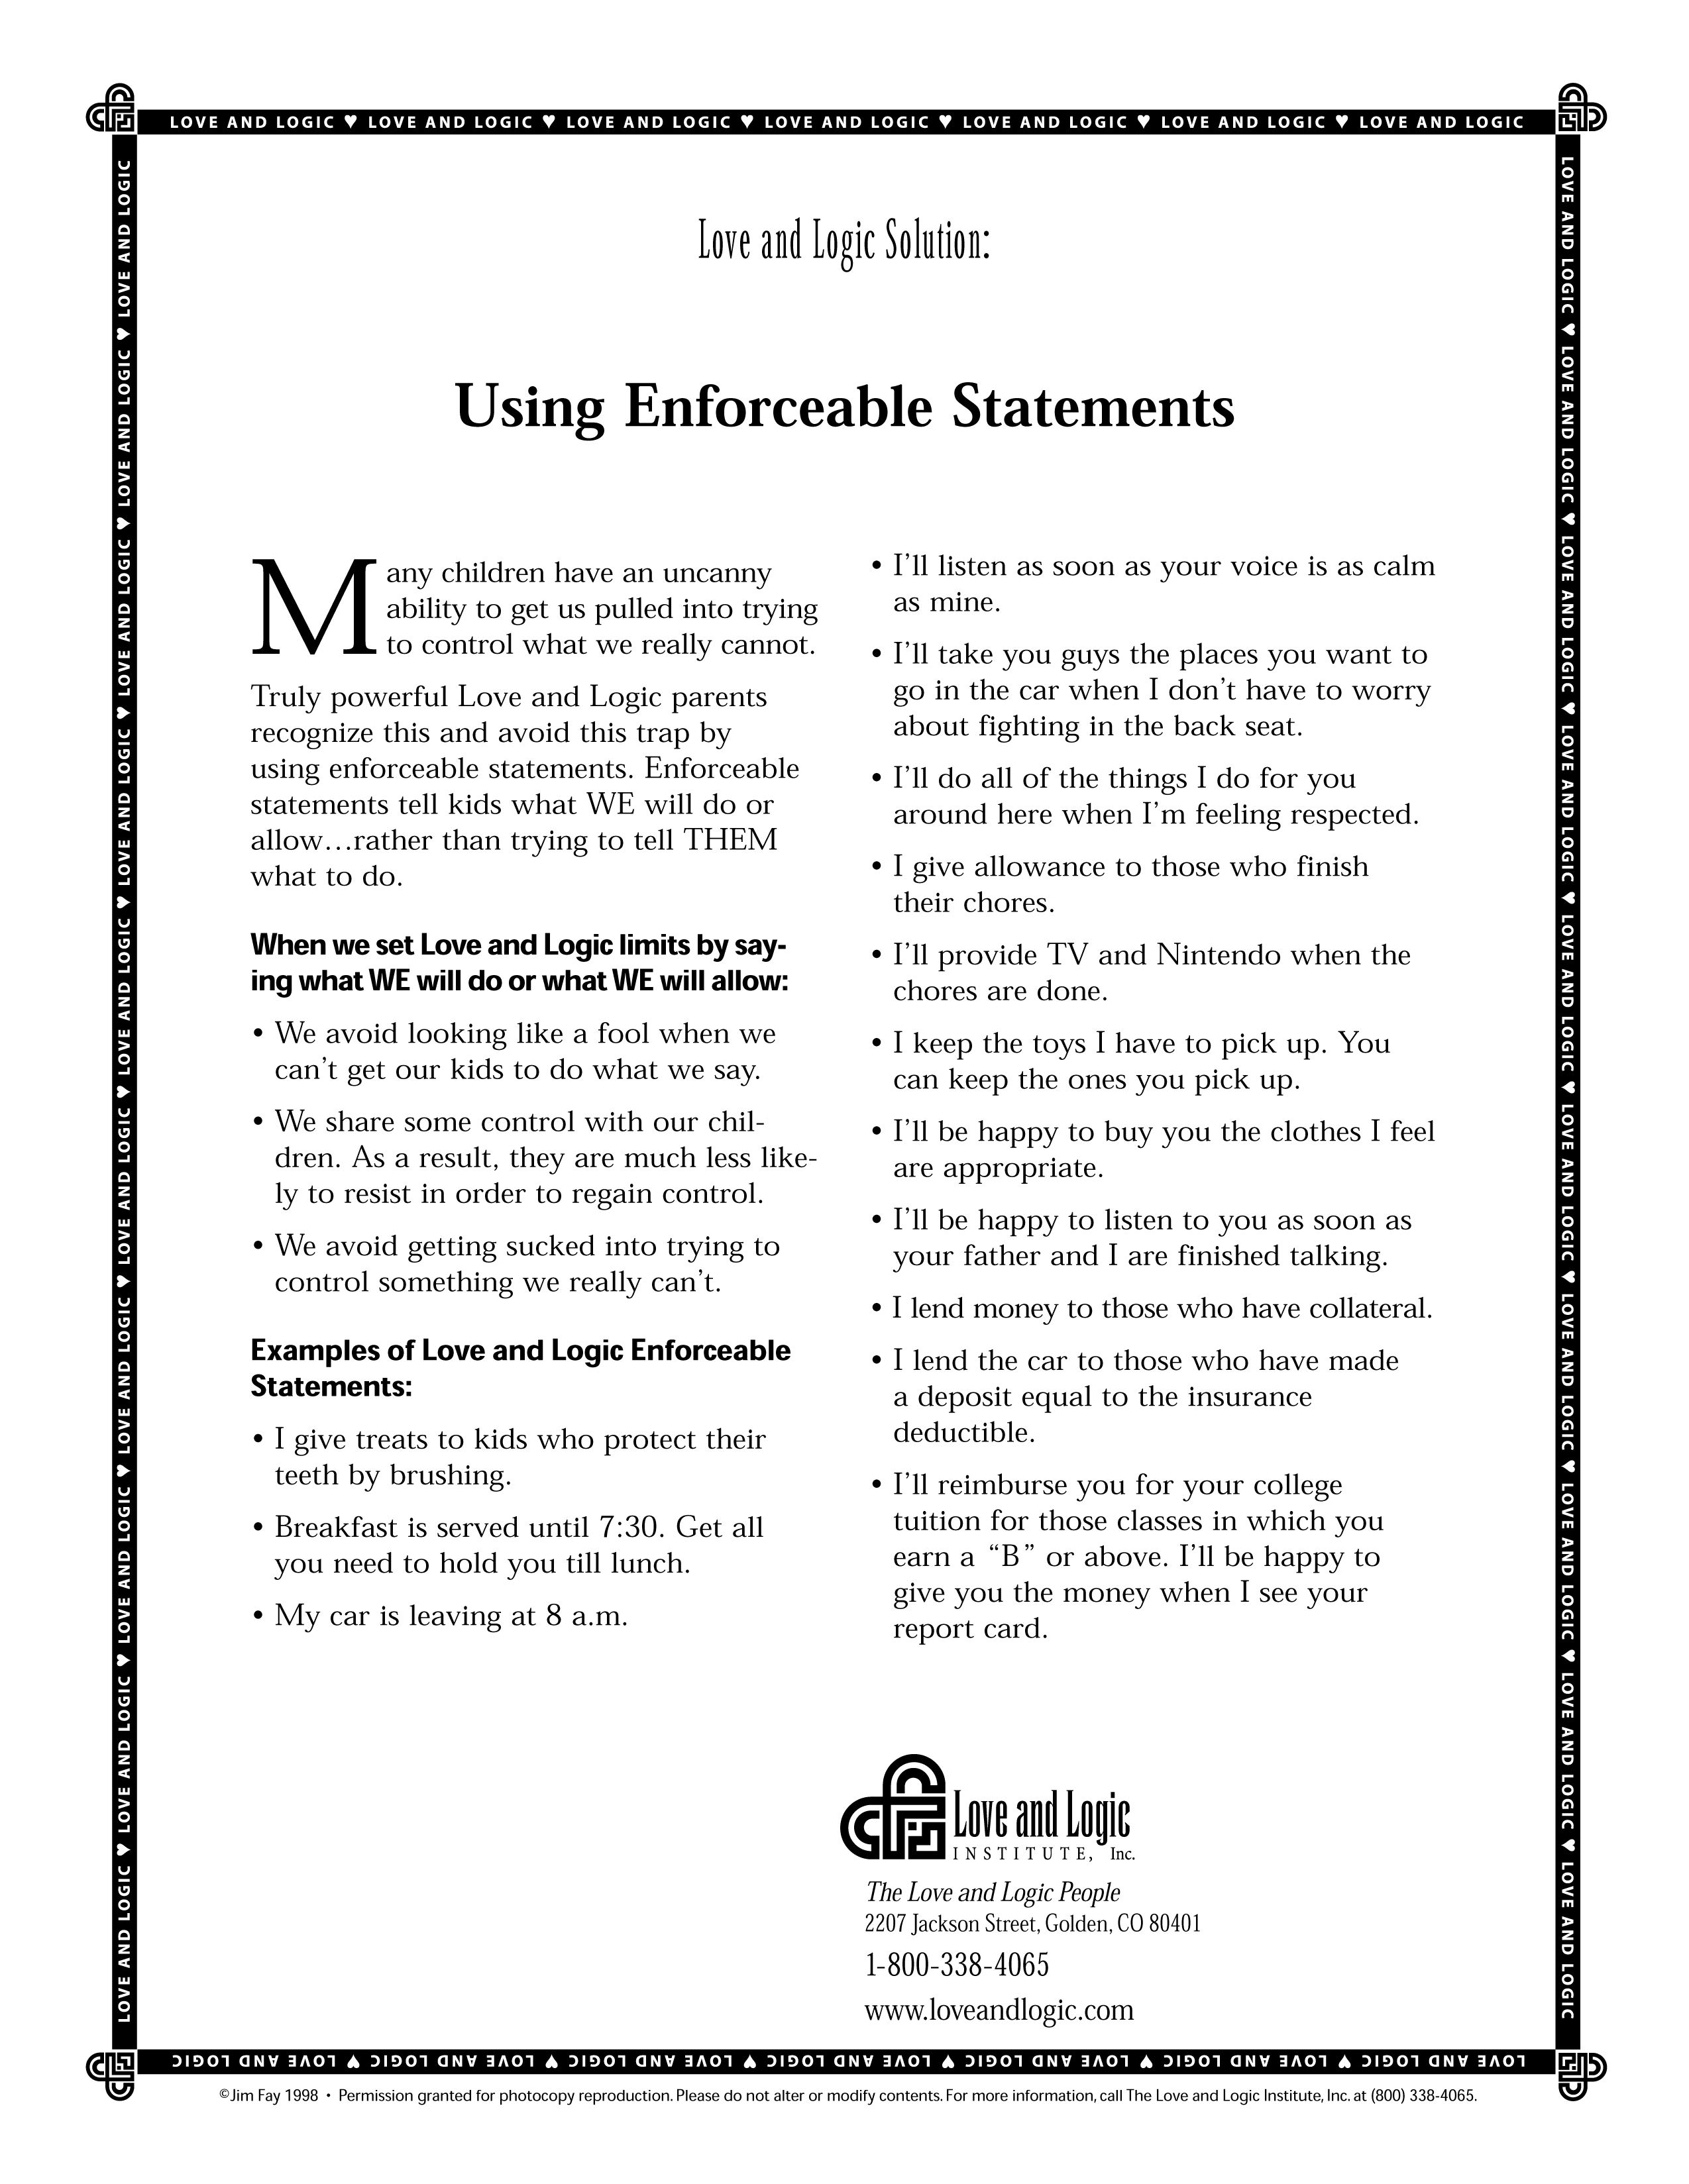 Parenting handout on how to use Enforceable Statements with your ...